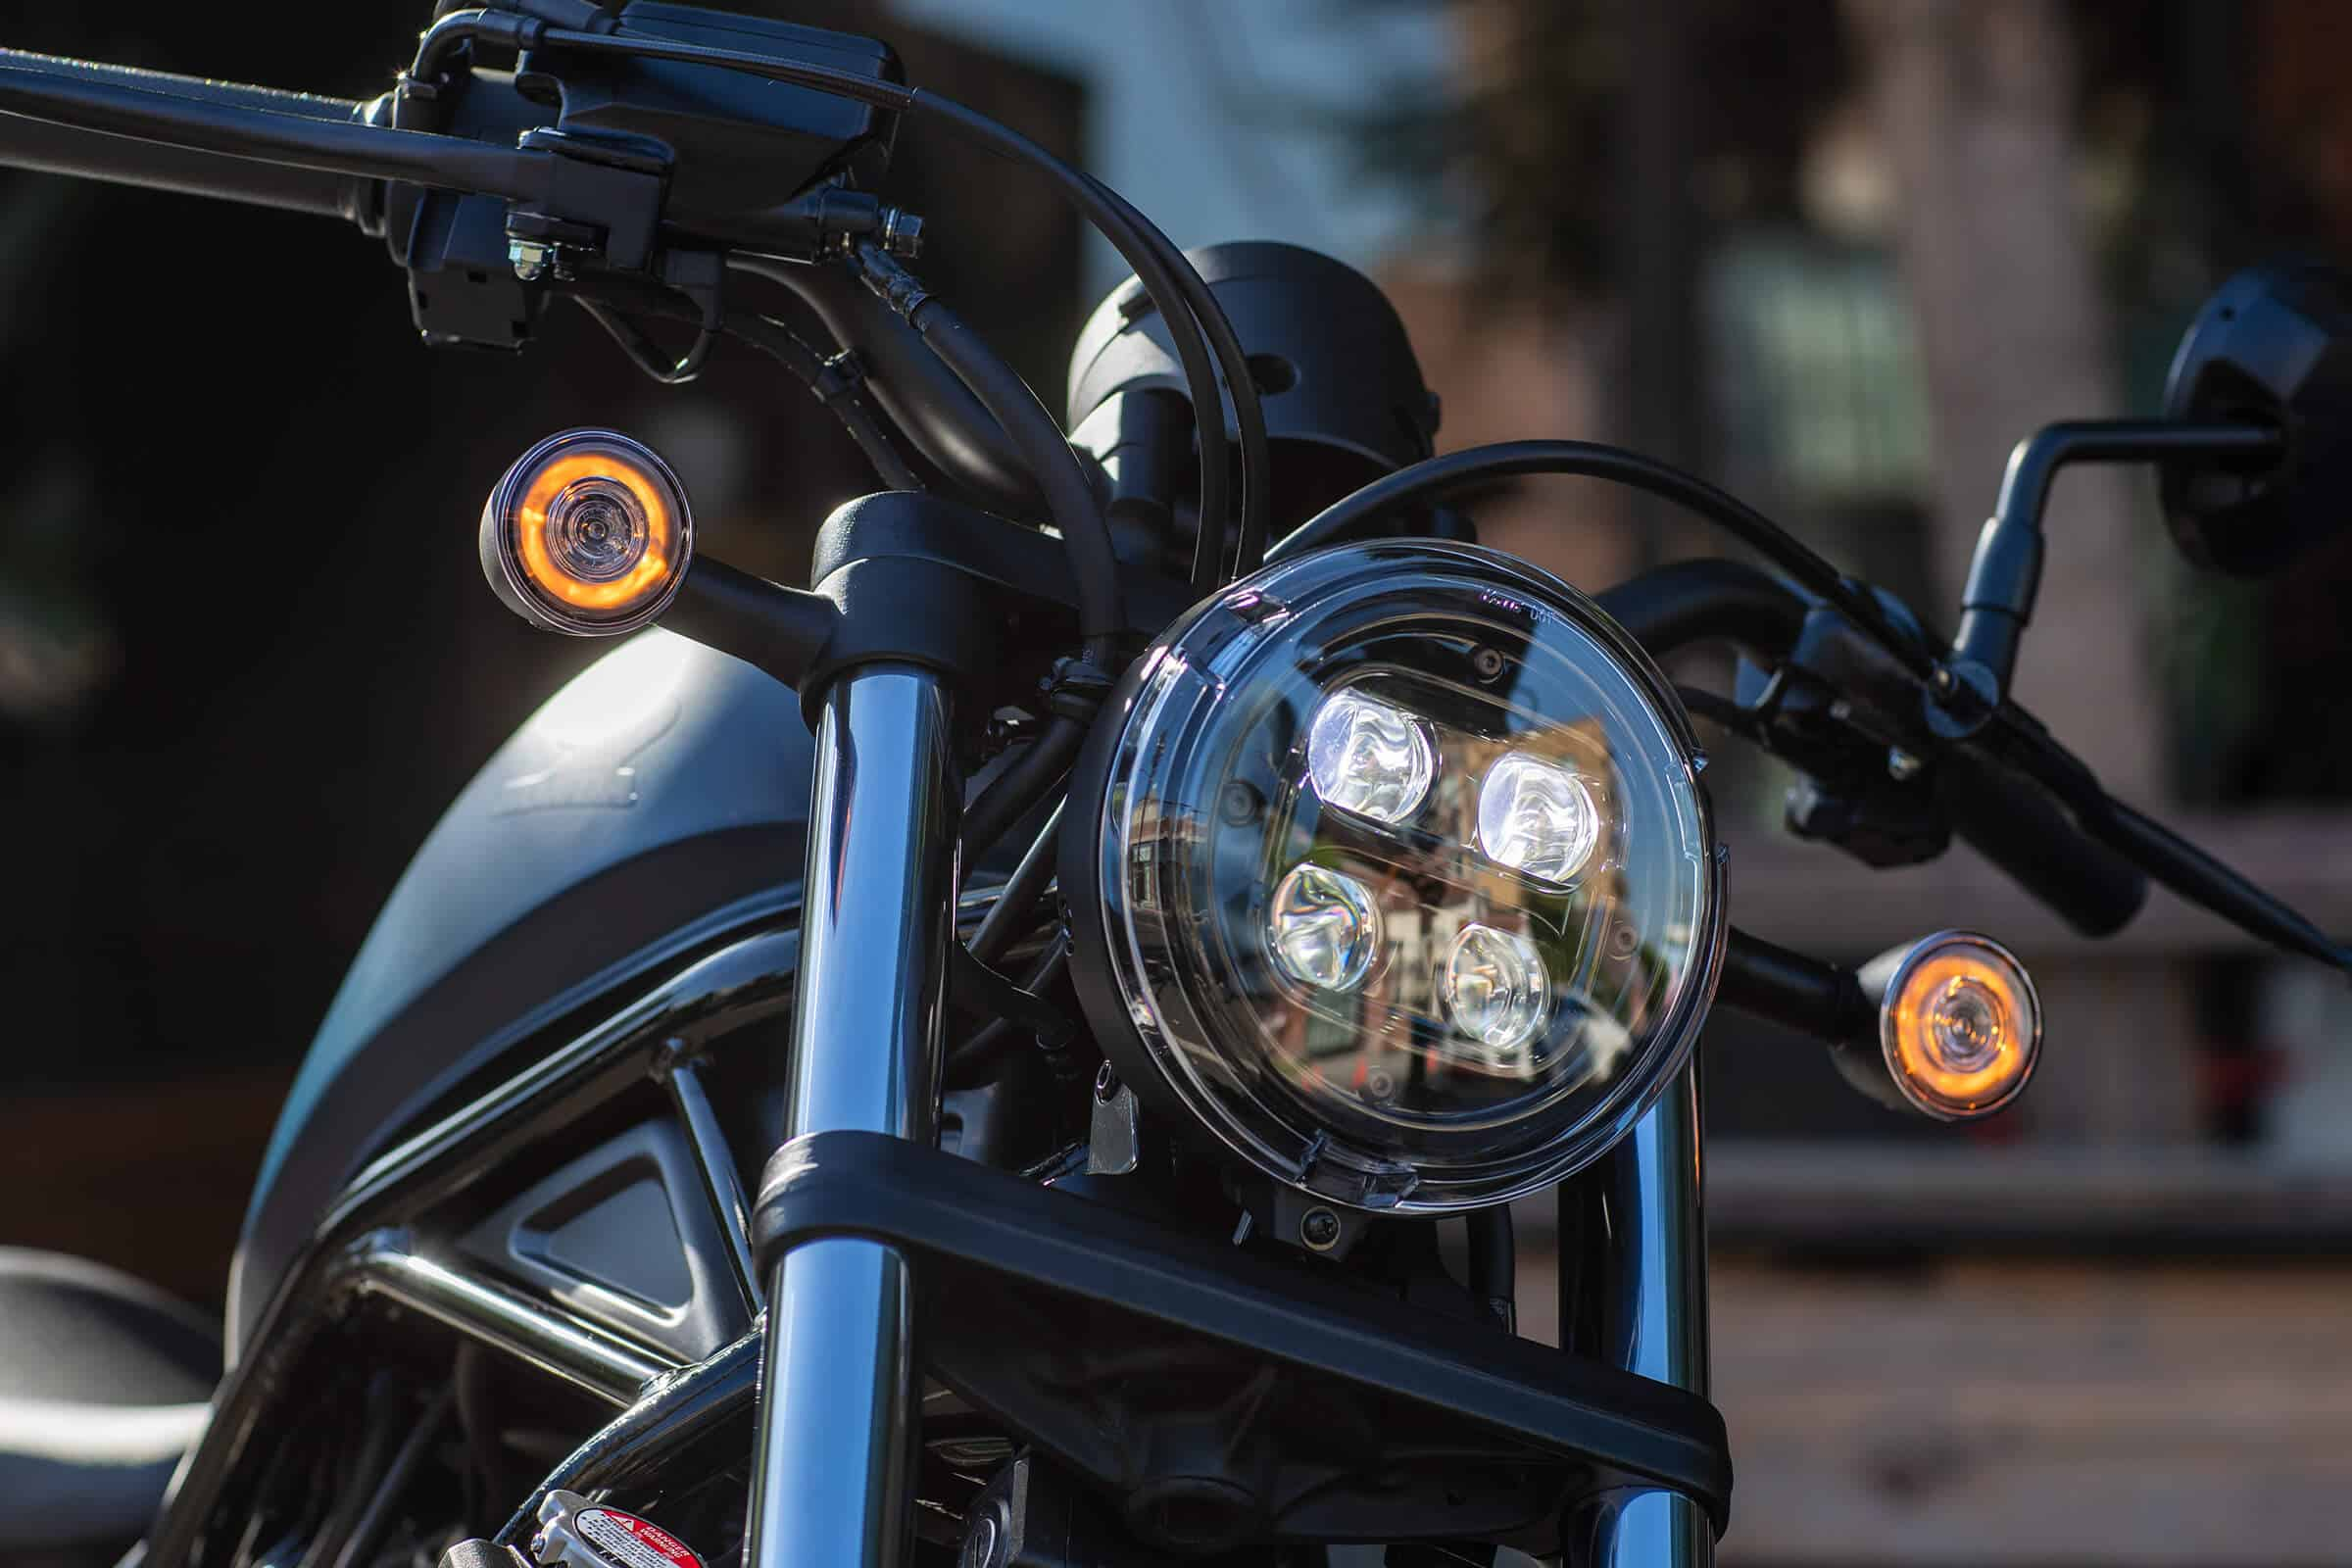 2020-honda-rebel-300-headlight